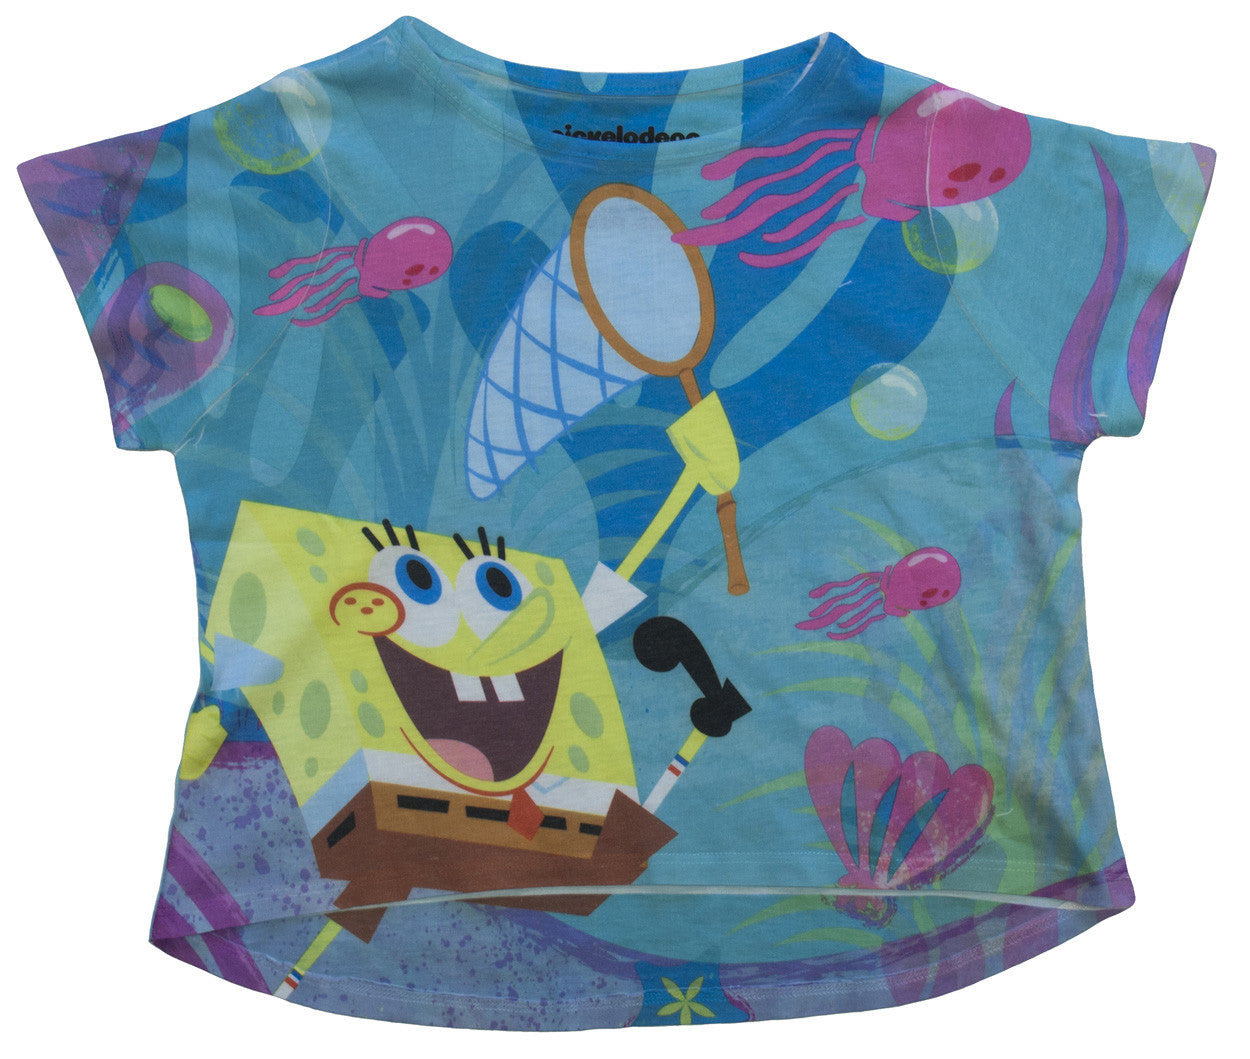 SpongeBob SquarePants Beachy Crop T-shirt